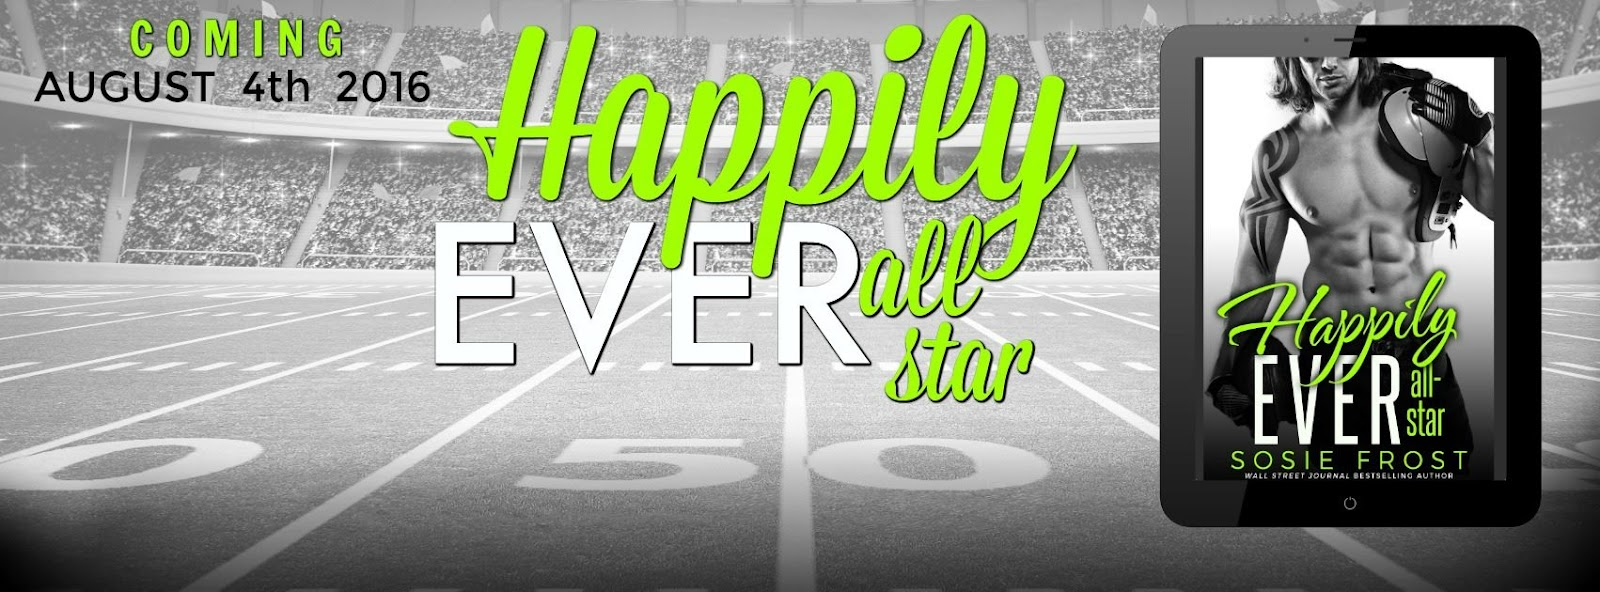 happily ever all star.jpg